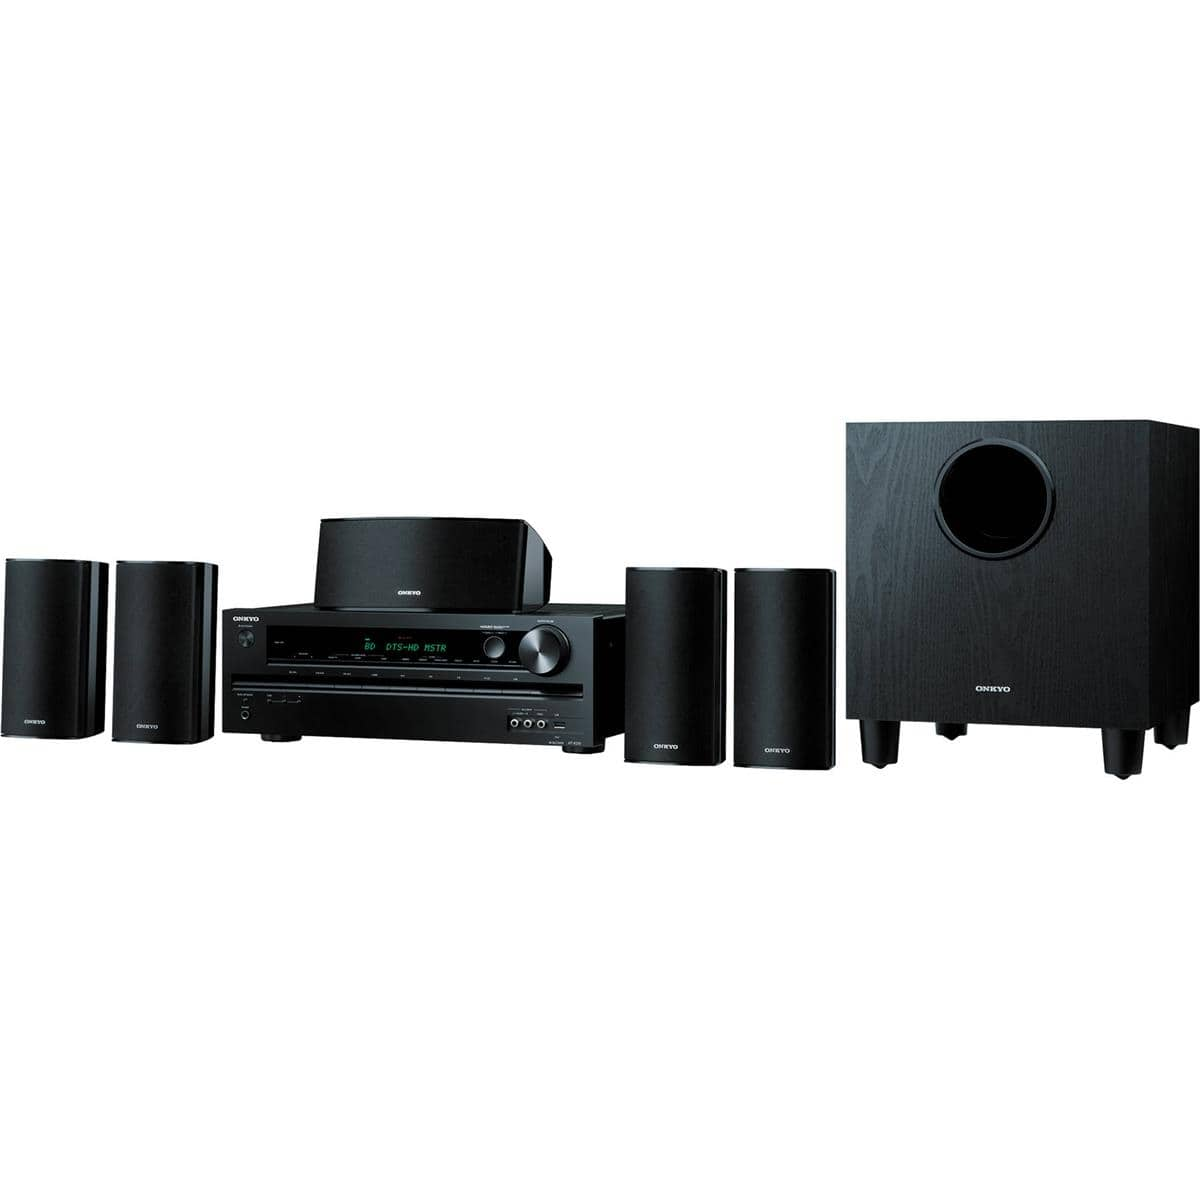 Onkyo HT-S3910 5.1-Channel Home Theater System $319 + Free S/H@ Adorama